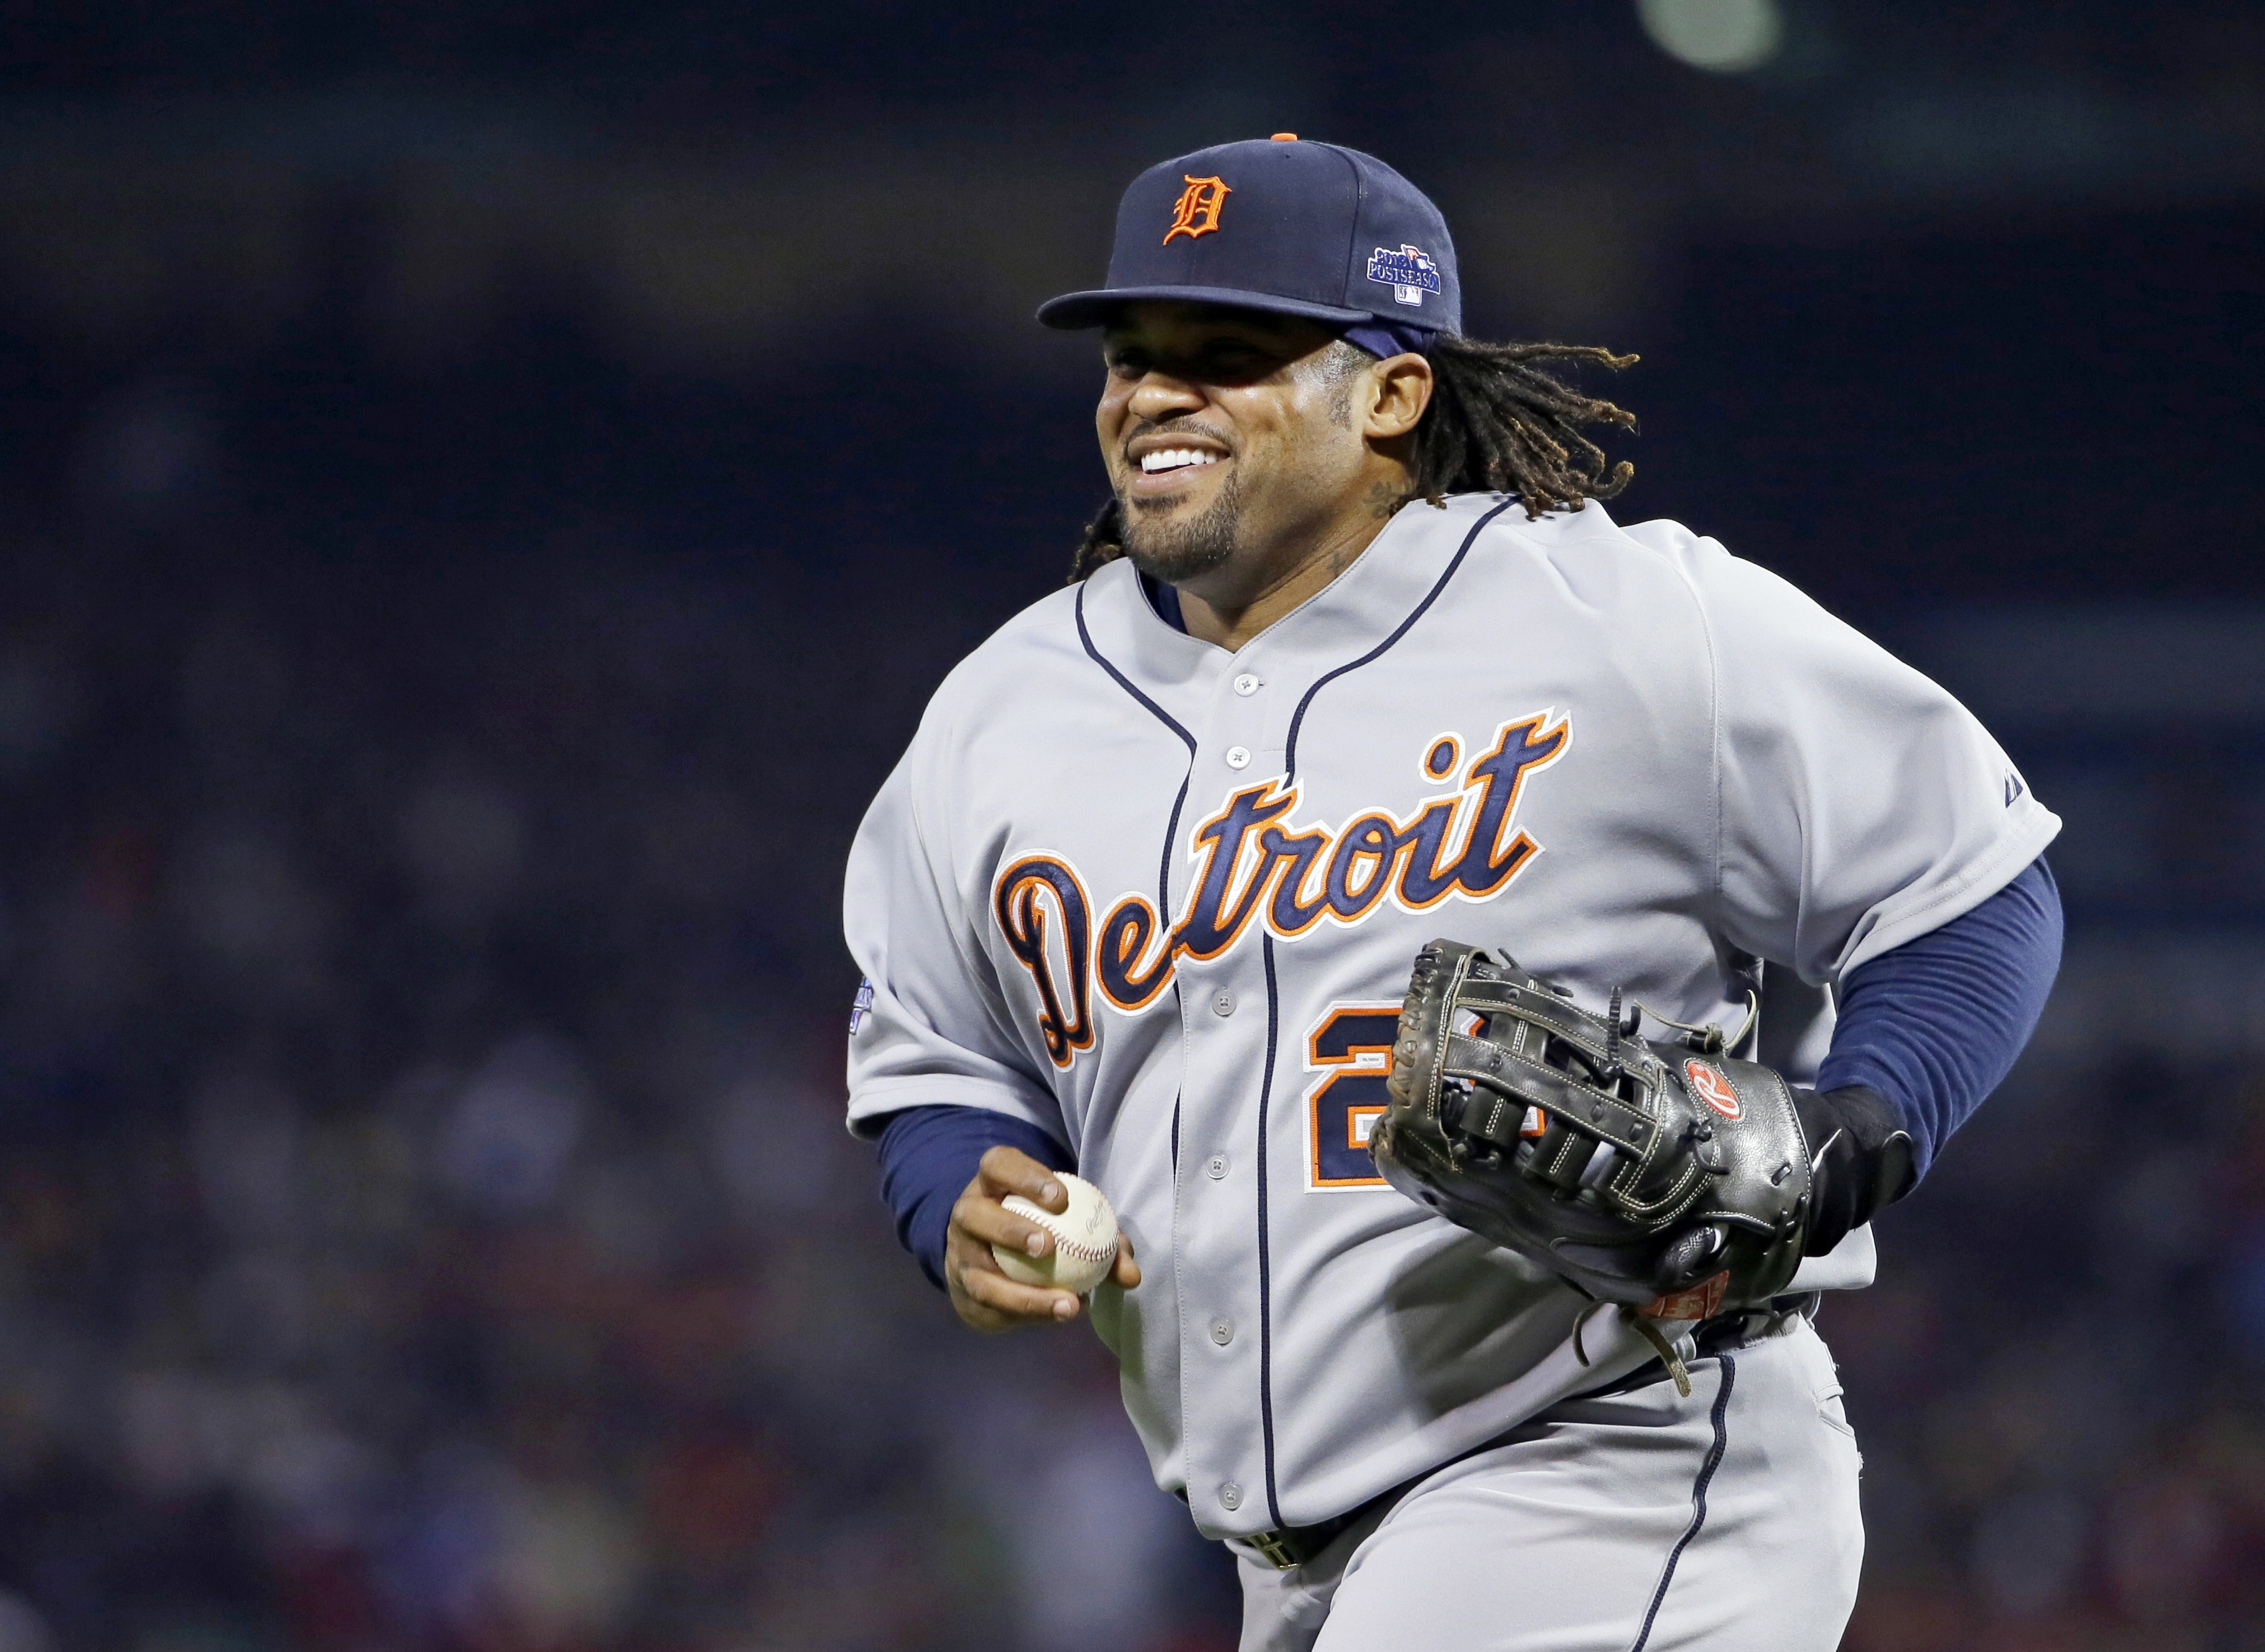 Prince Fielder will be wearing the uniform of the Texas Rangers in the future after his trade by the Tigers.